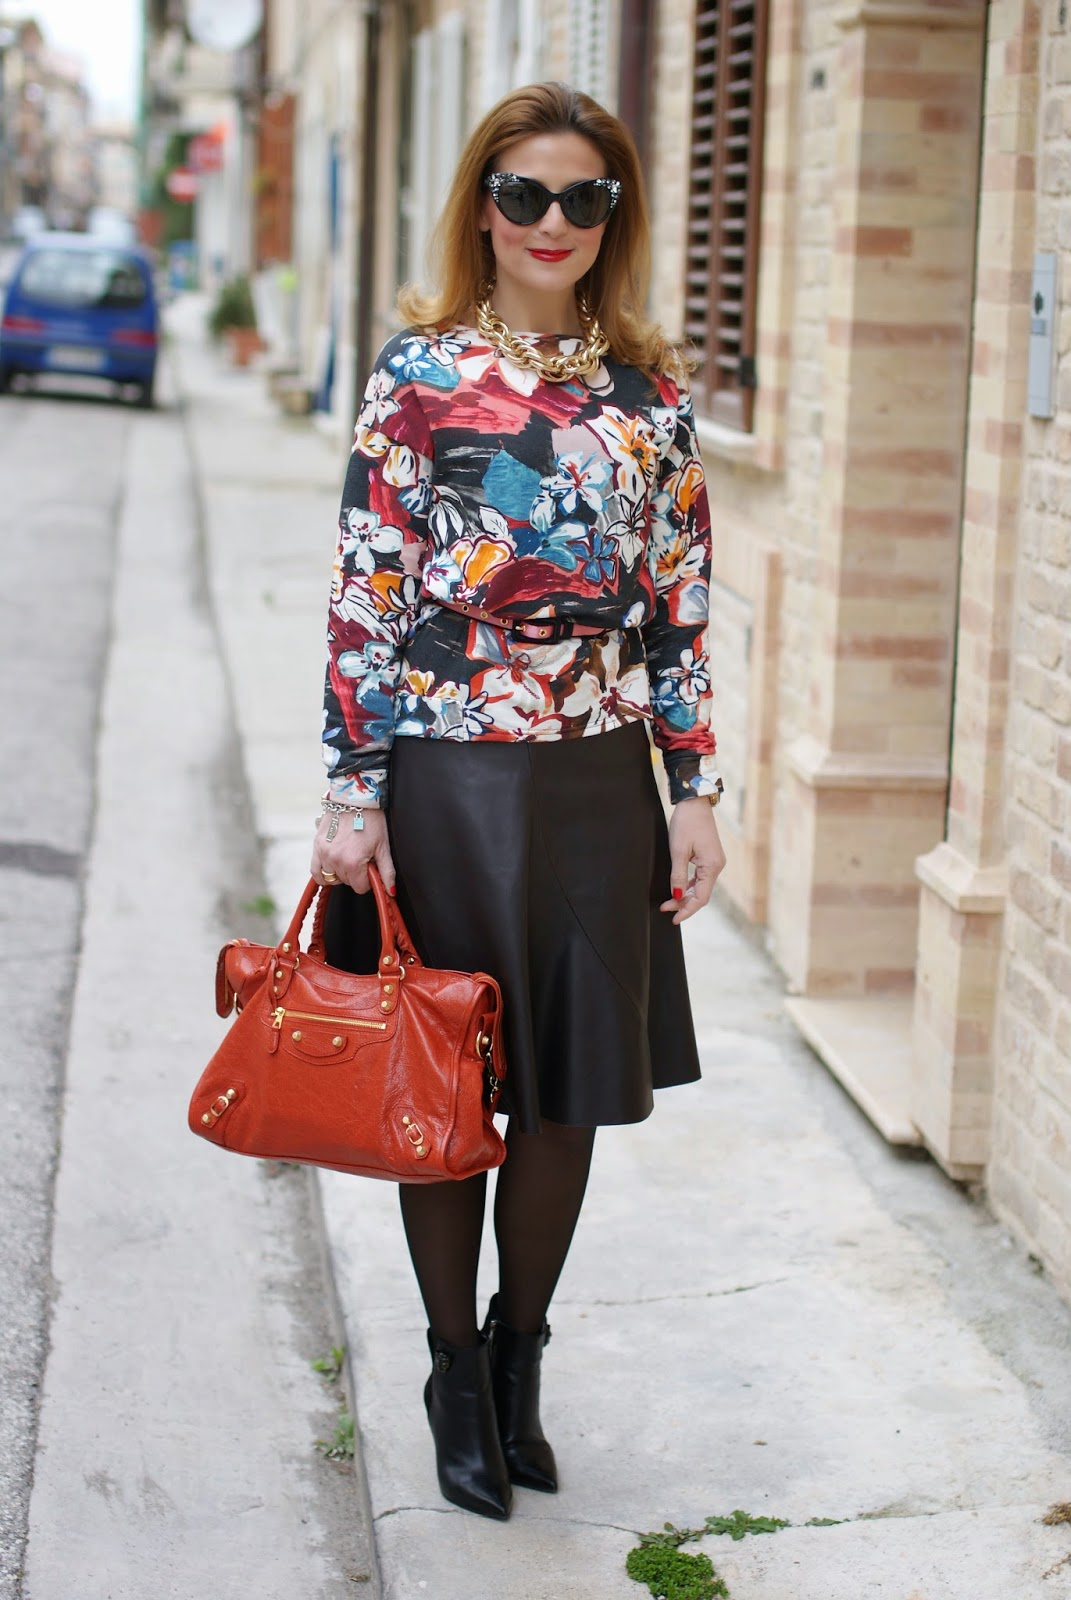 Dsquared2 Crystal cat eye sunglasses found on Giarre.com worn with floral sweatsirt and Balenciaga City bag in rouge ambre, leather skirt and sheer black tights on Fashion and Cookies fashion blog